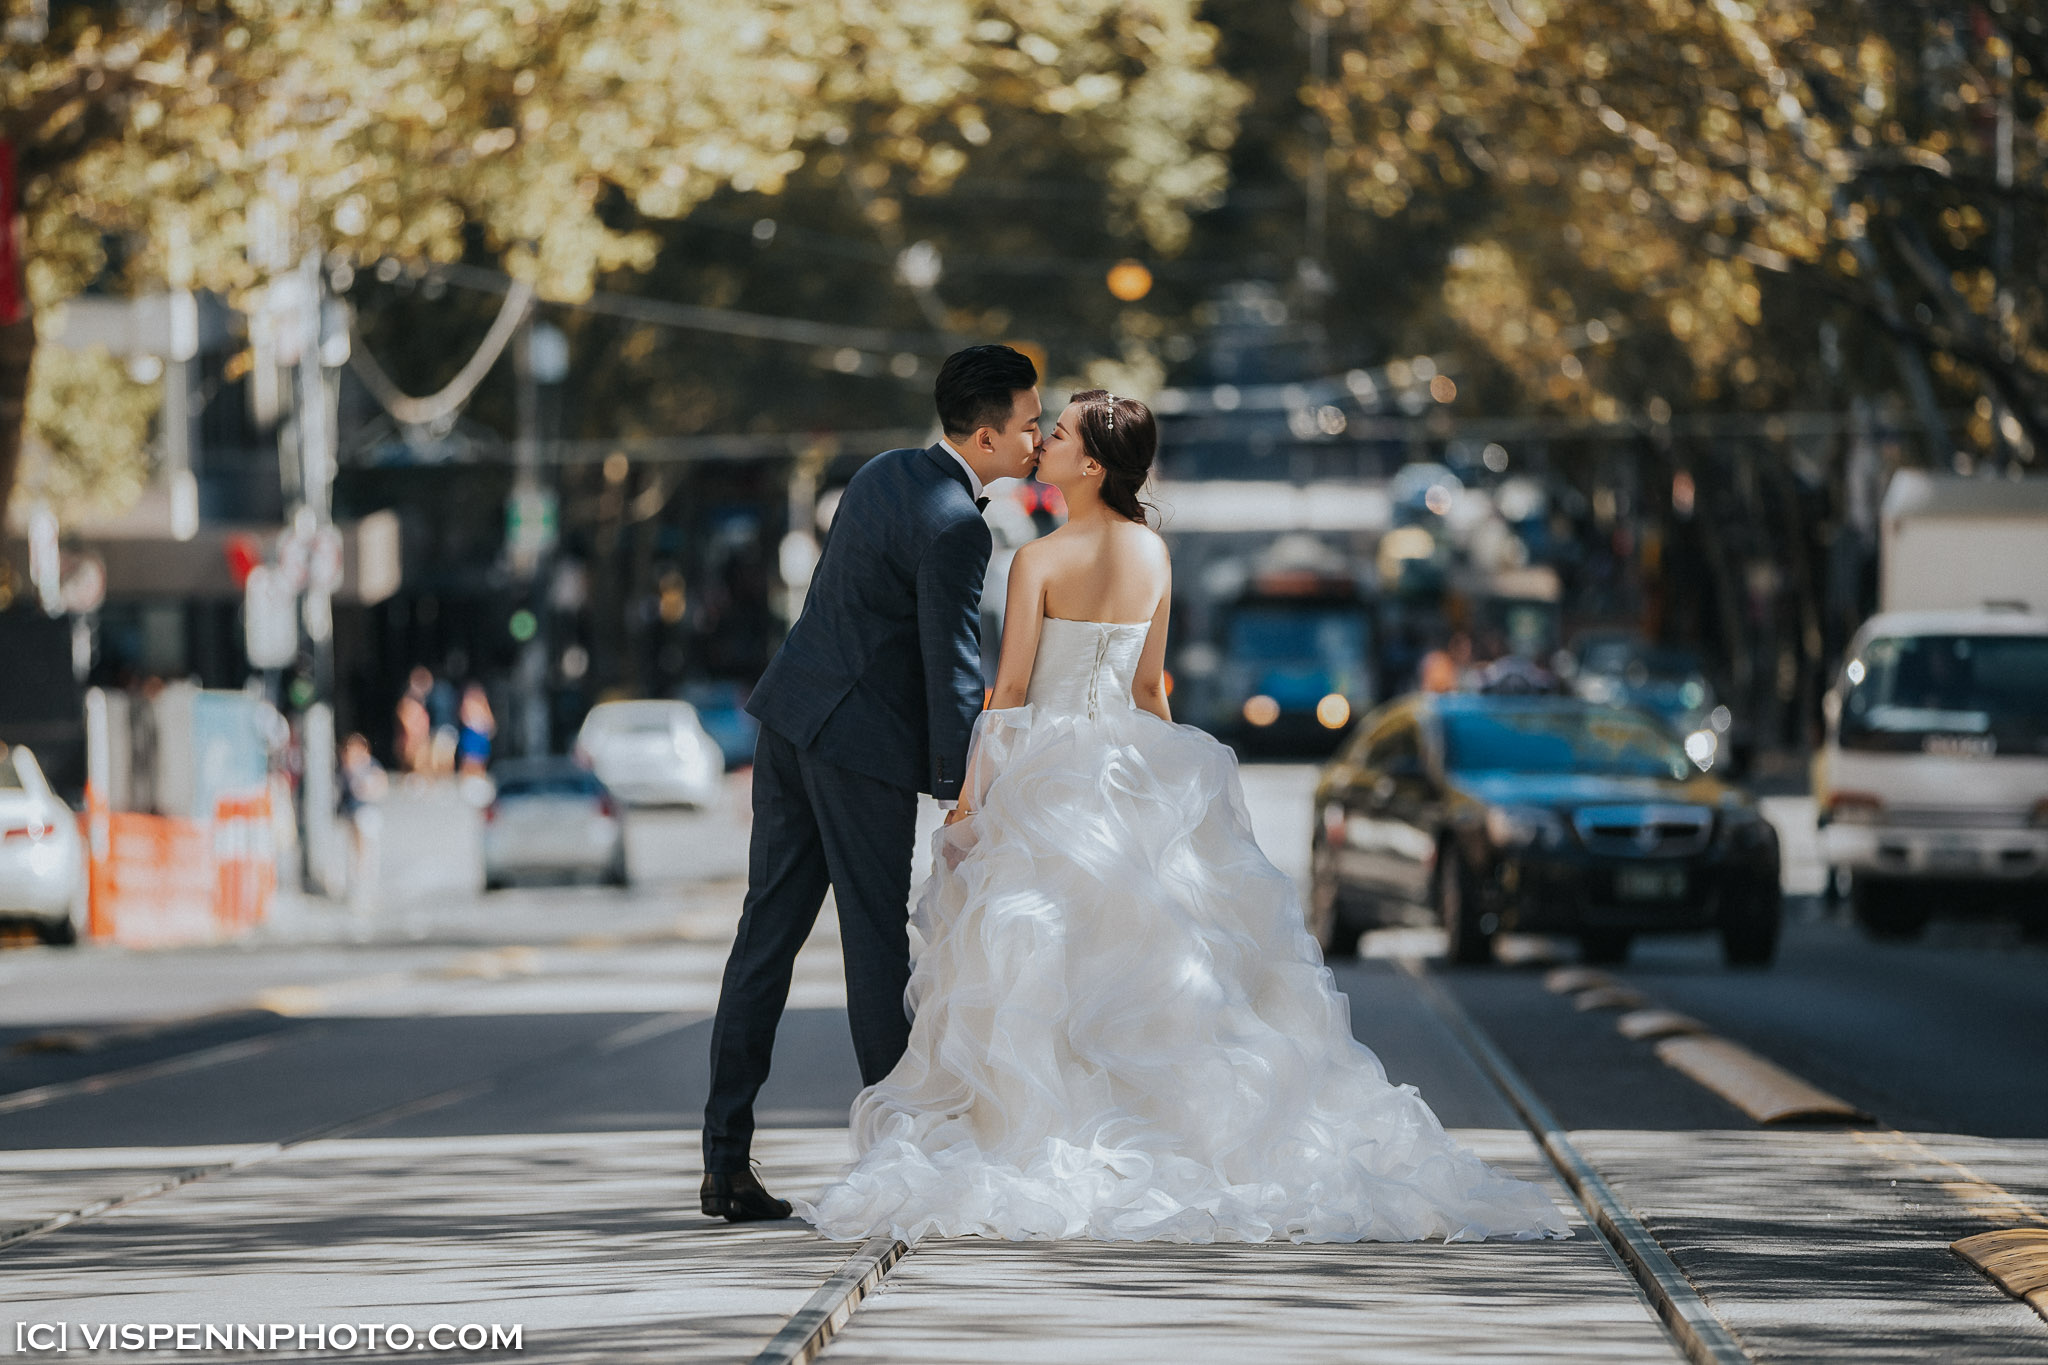 PRE WEDDING Photography Melbourne AndyCHEN 2928 1DX ZHPENN